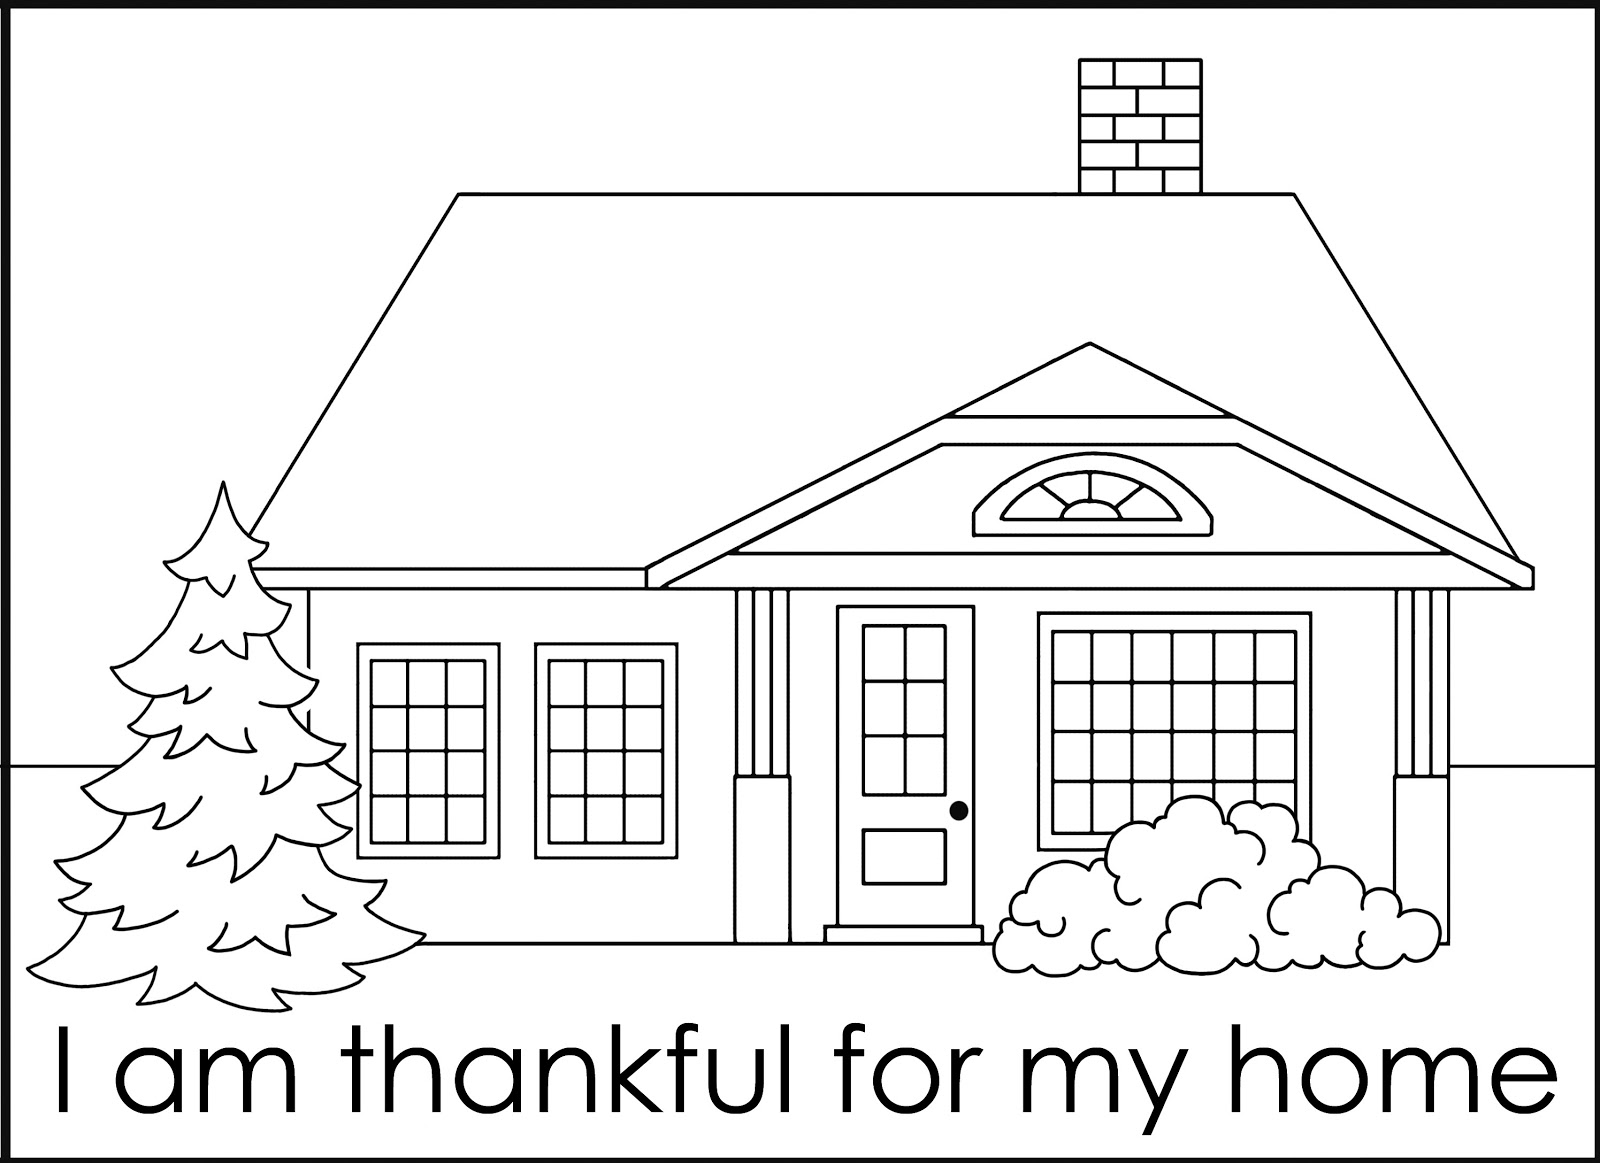 home coloring image coloring pages image home coloring